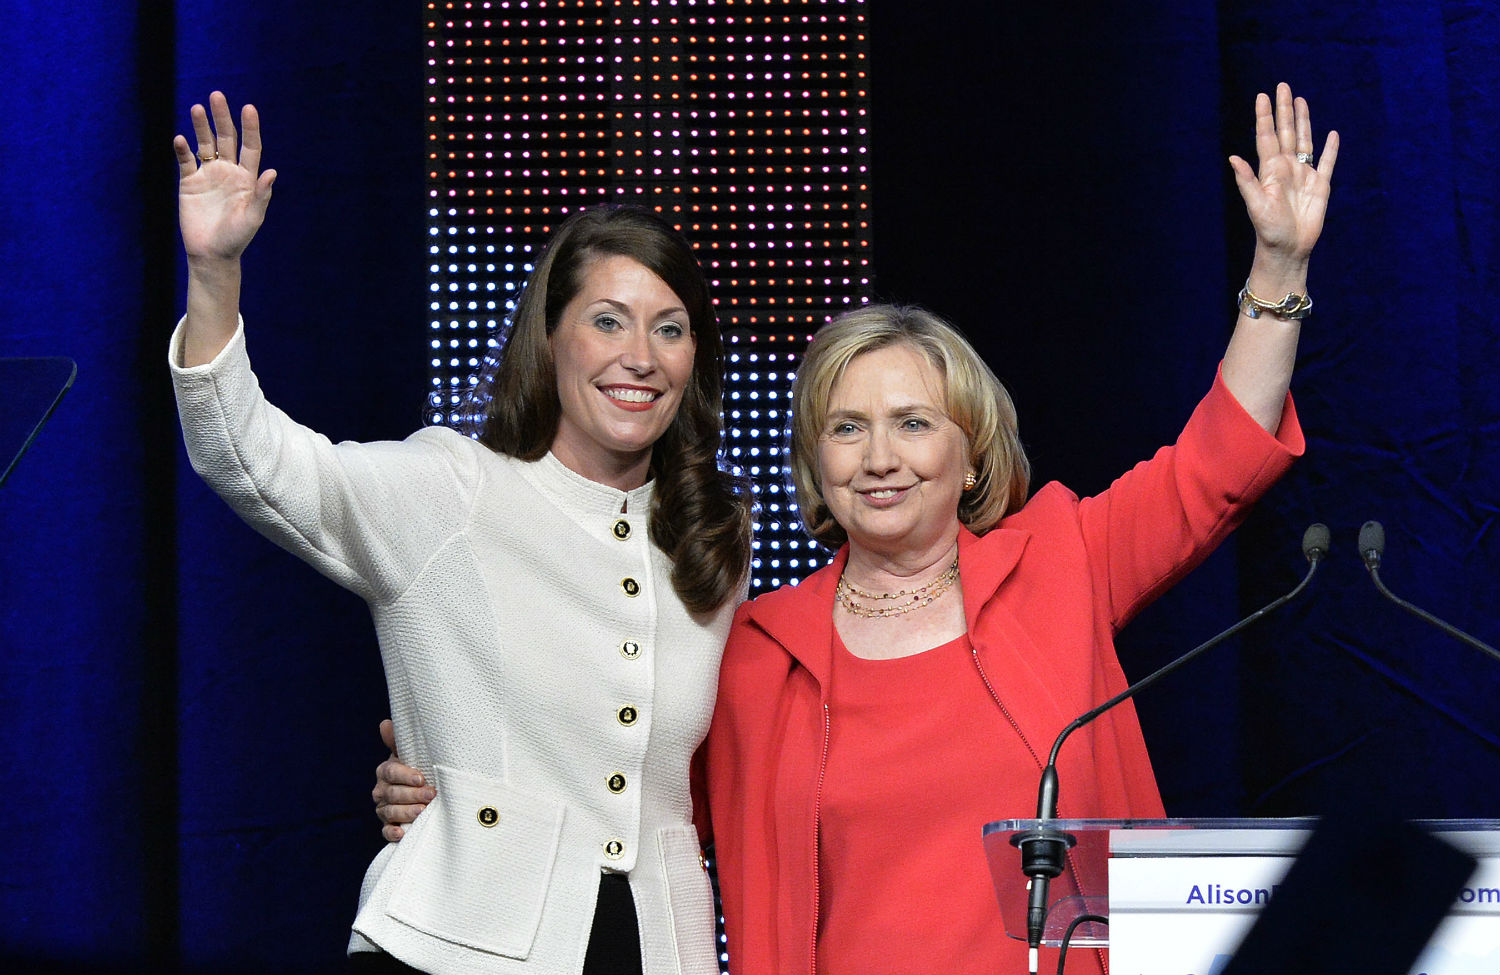 Alison-Lundergan-Grimes-and-Hillary-Clinton